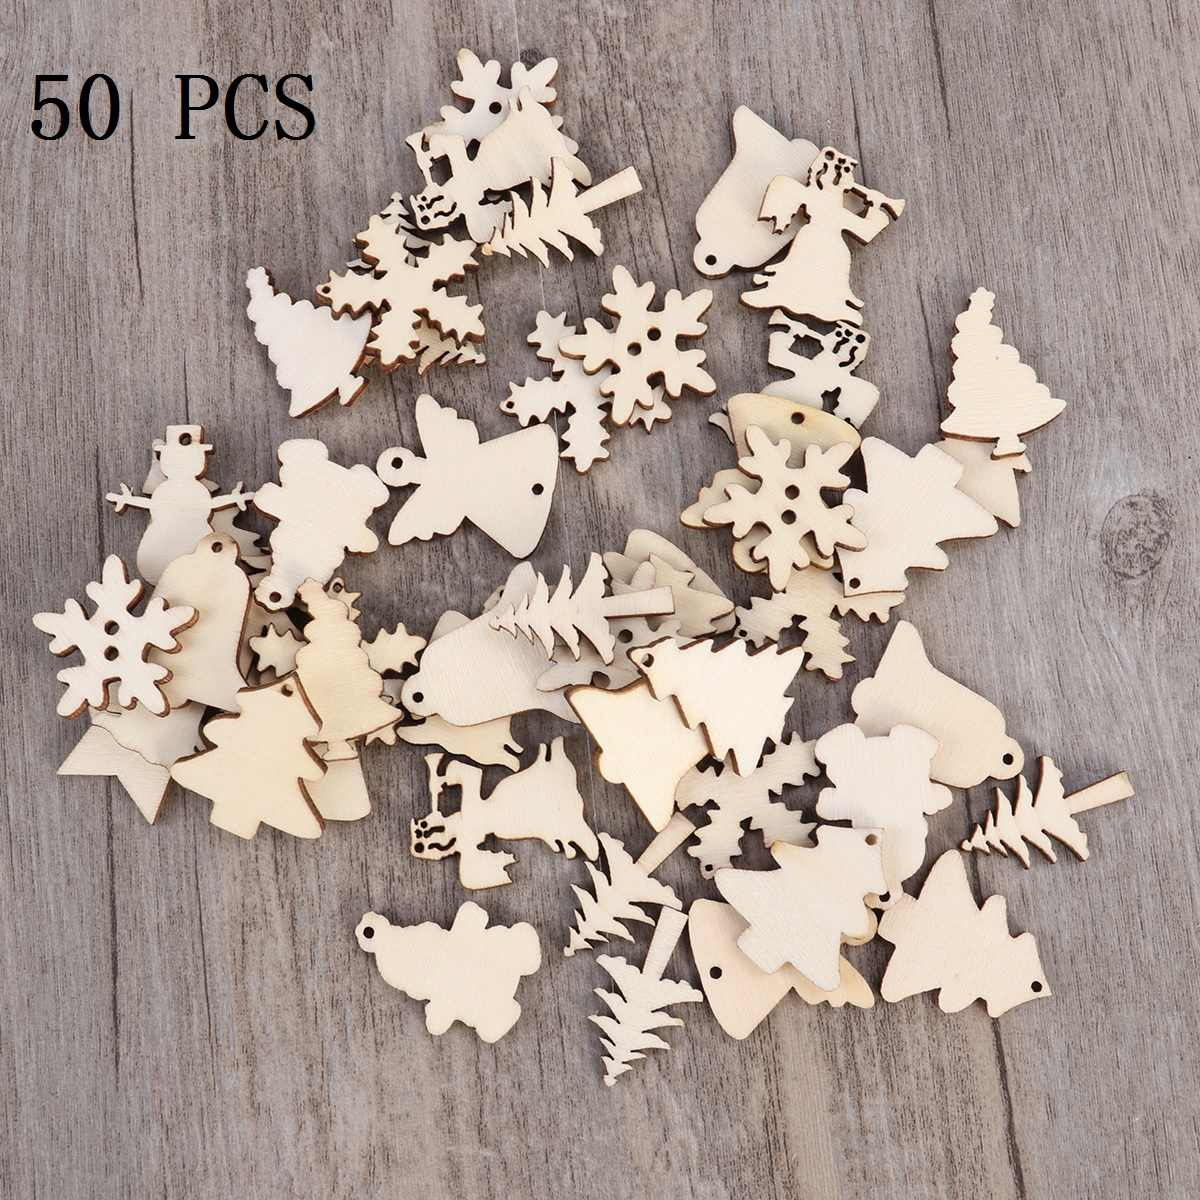 Free Wooden Christmas Tree Patterns.50pcs Wooden Christmas Tree Snowman Snowflake Slices 12